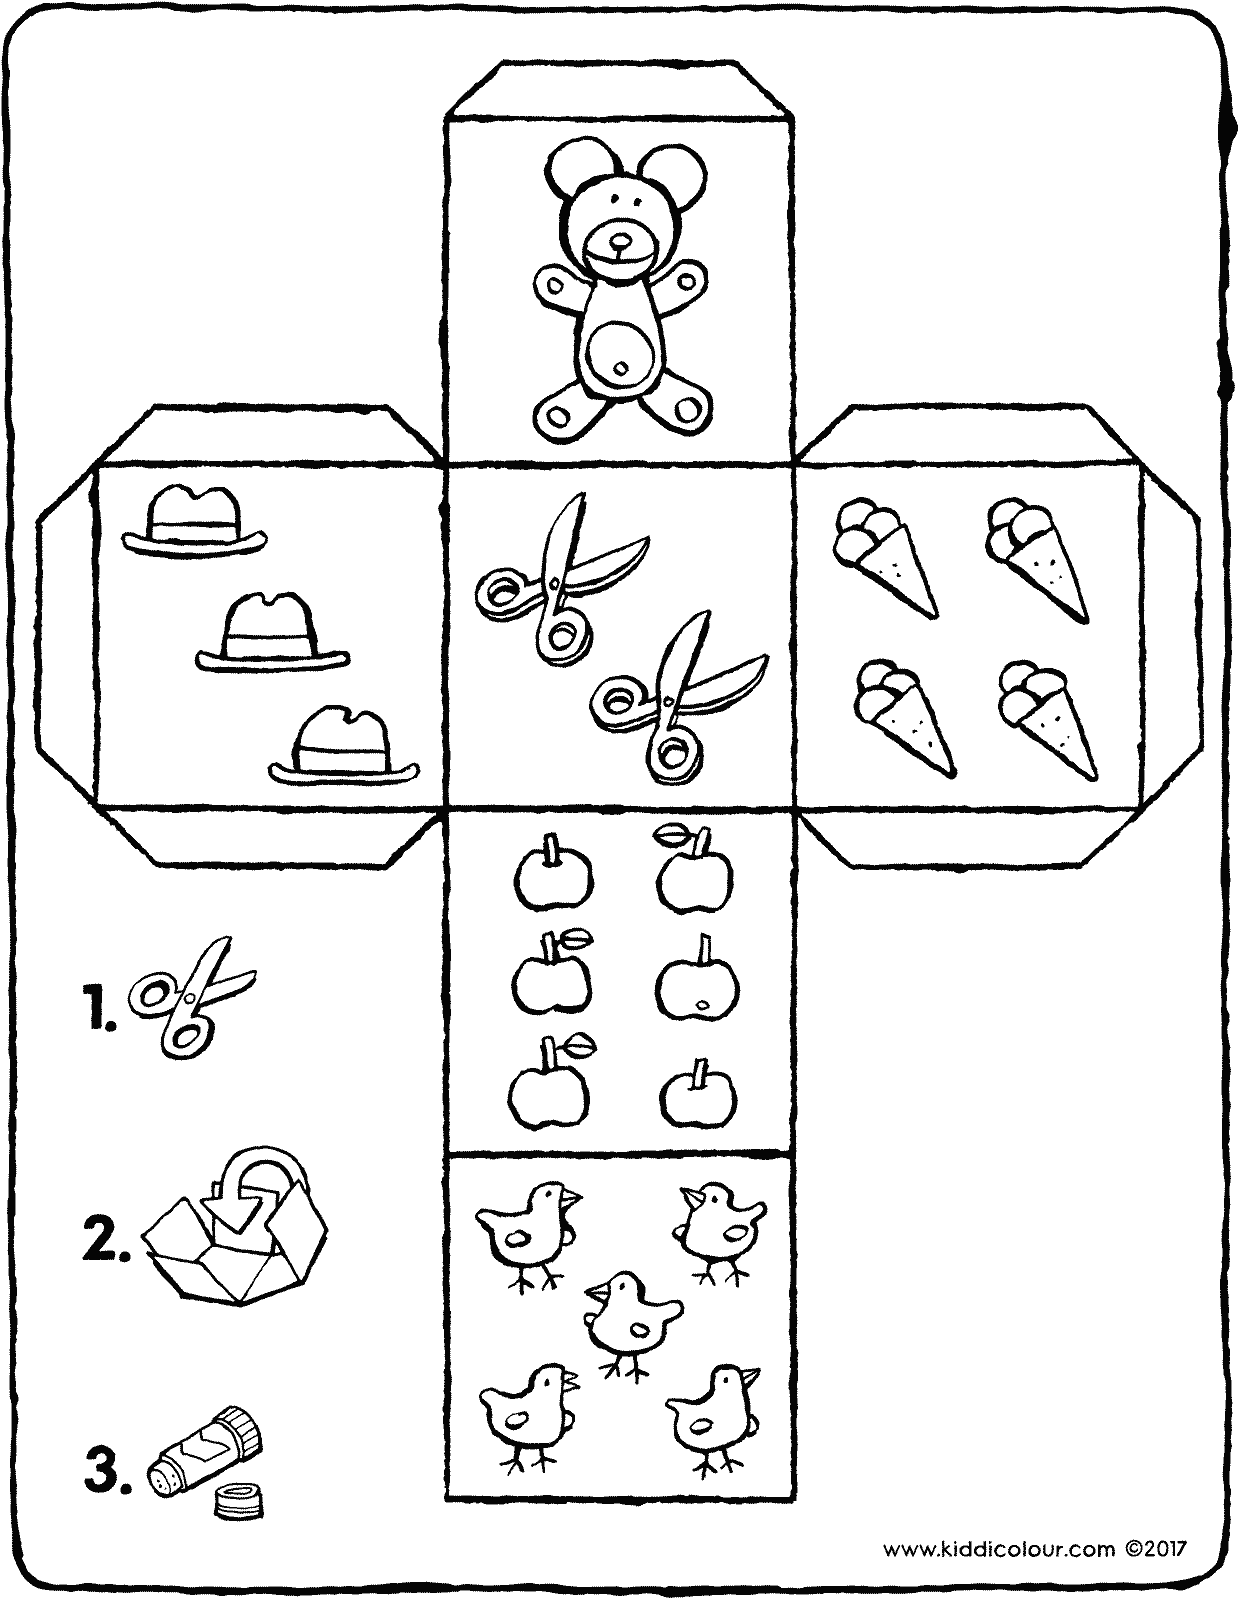 die crafts colouring page page drawing picture 01V